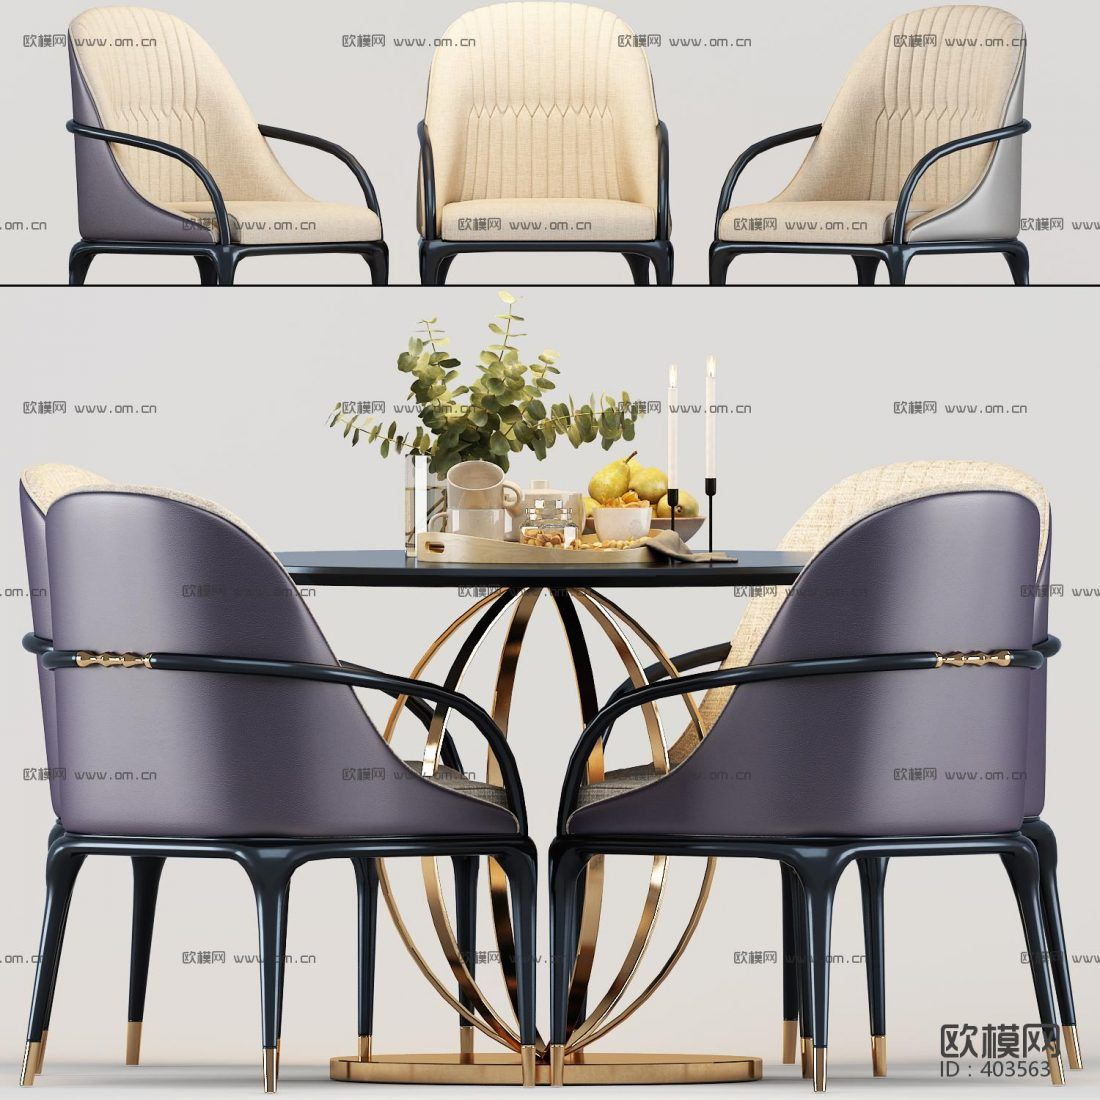 3d Model Dining Tables And Chairs 7 Free Download Table And Chairs Dining Table Coffee Table 3d Model